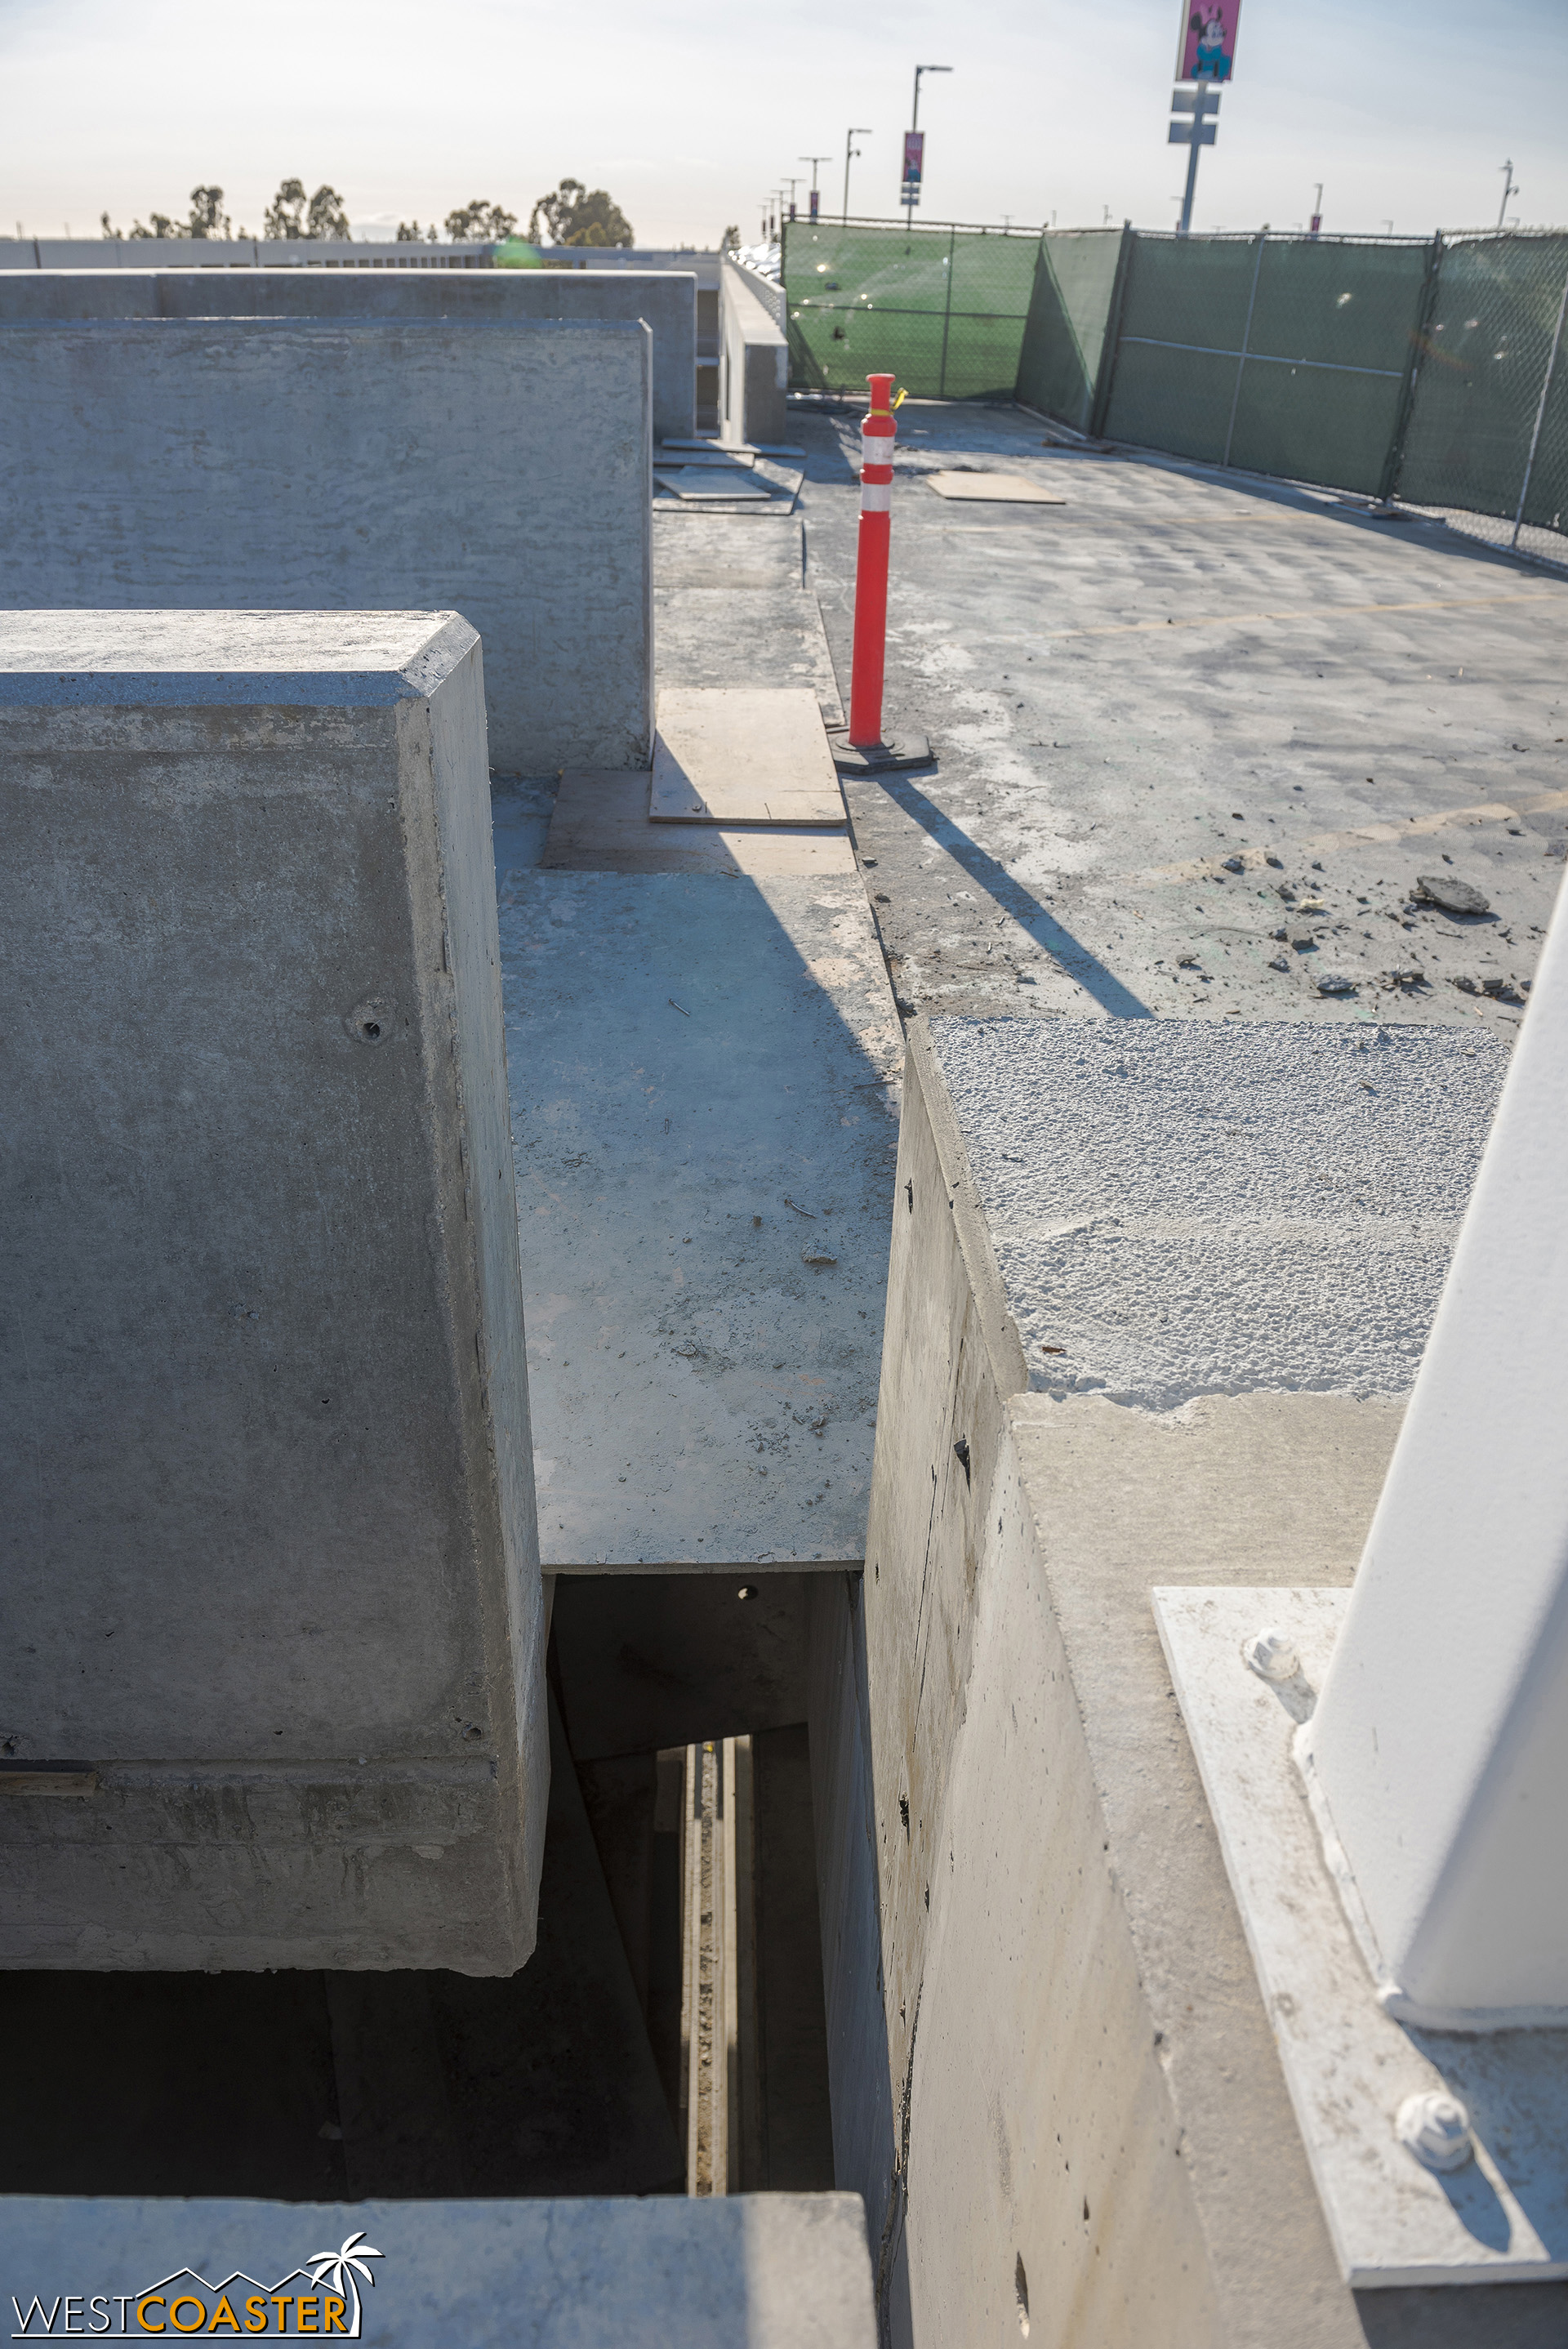 This gap between the bridge connecting the new structure to the old and the existing deck will be filled in with an expansion joint to allow for movement between the two structures.  It's an earthquake accommodation thing.